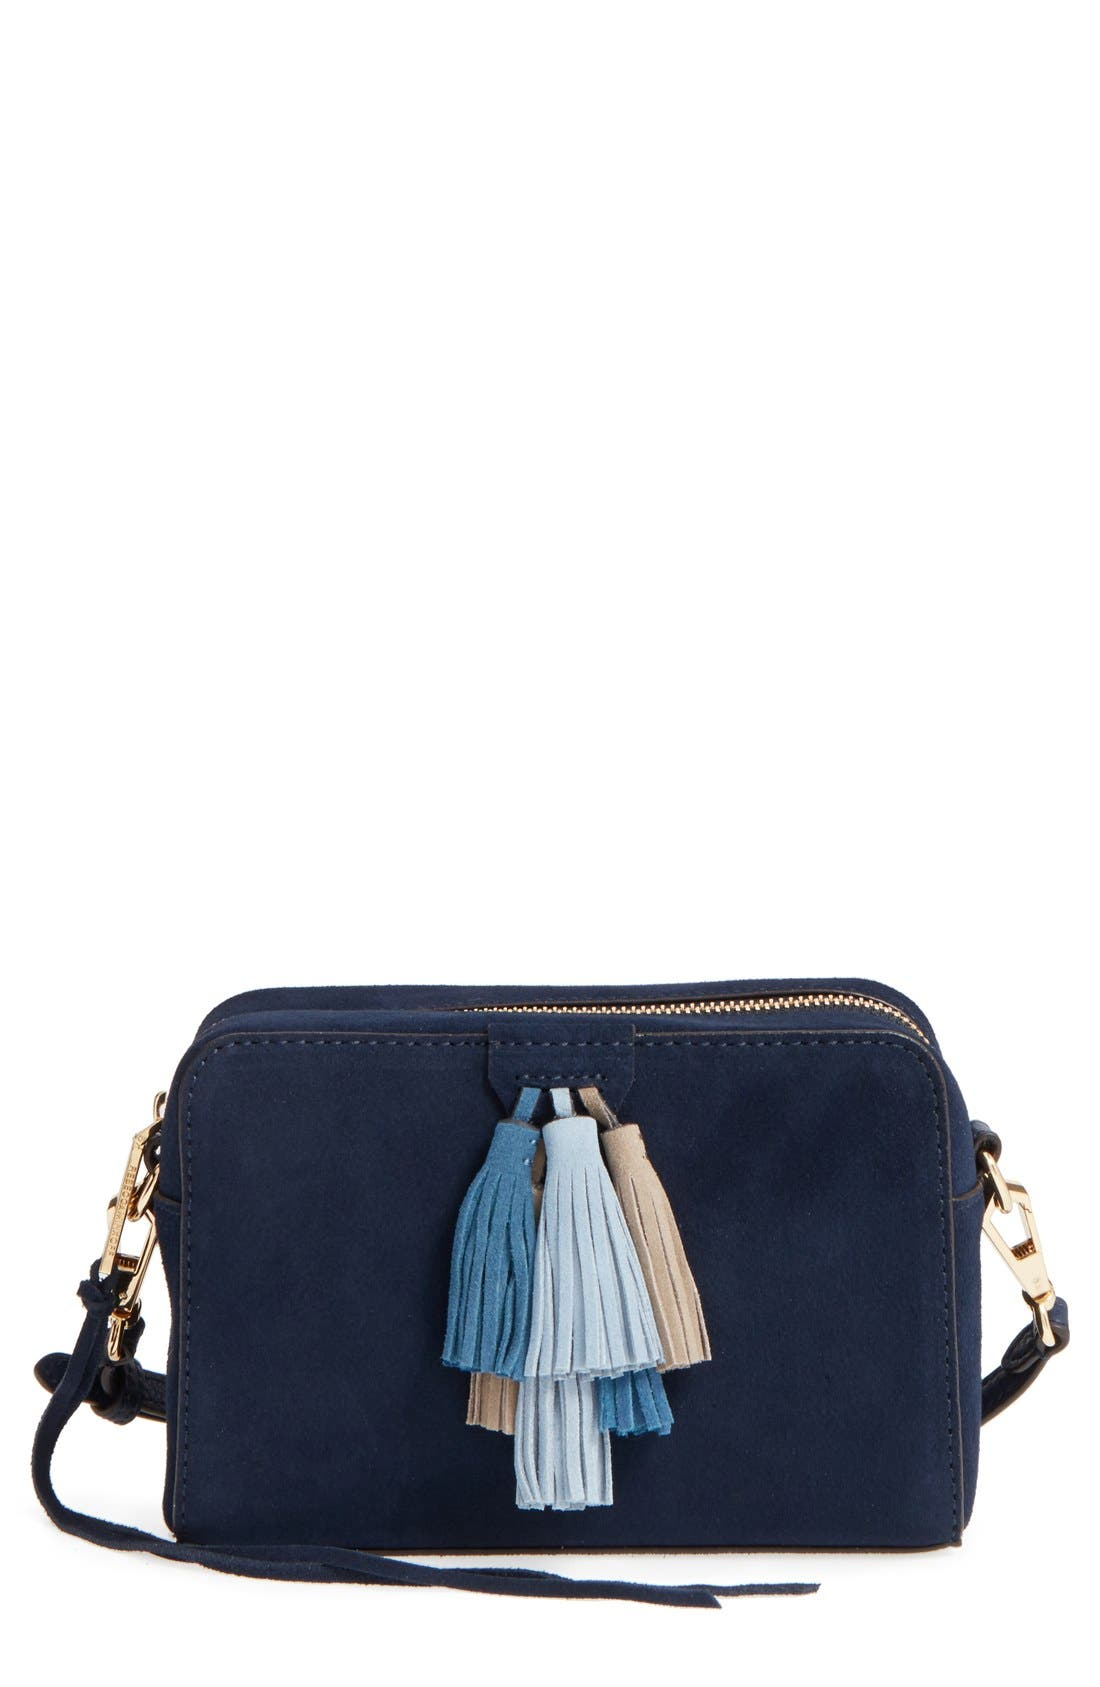 Alternate Image 1 Selected - Rebecca Minkoff 'Sofia' Crossbody Bag